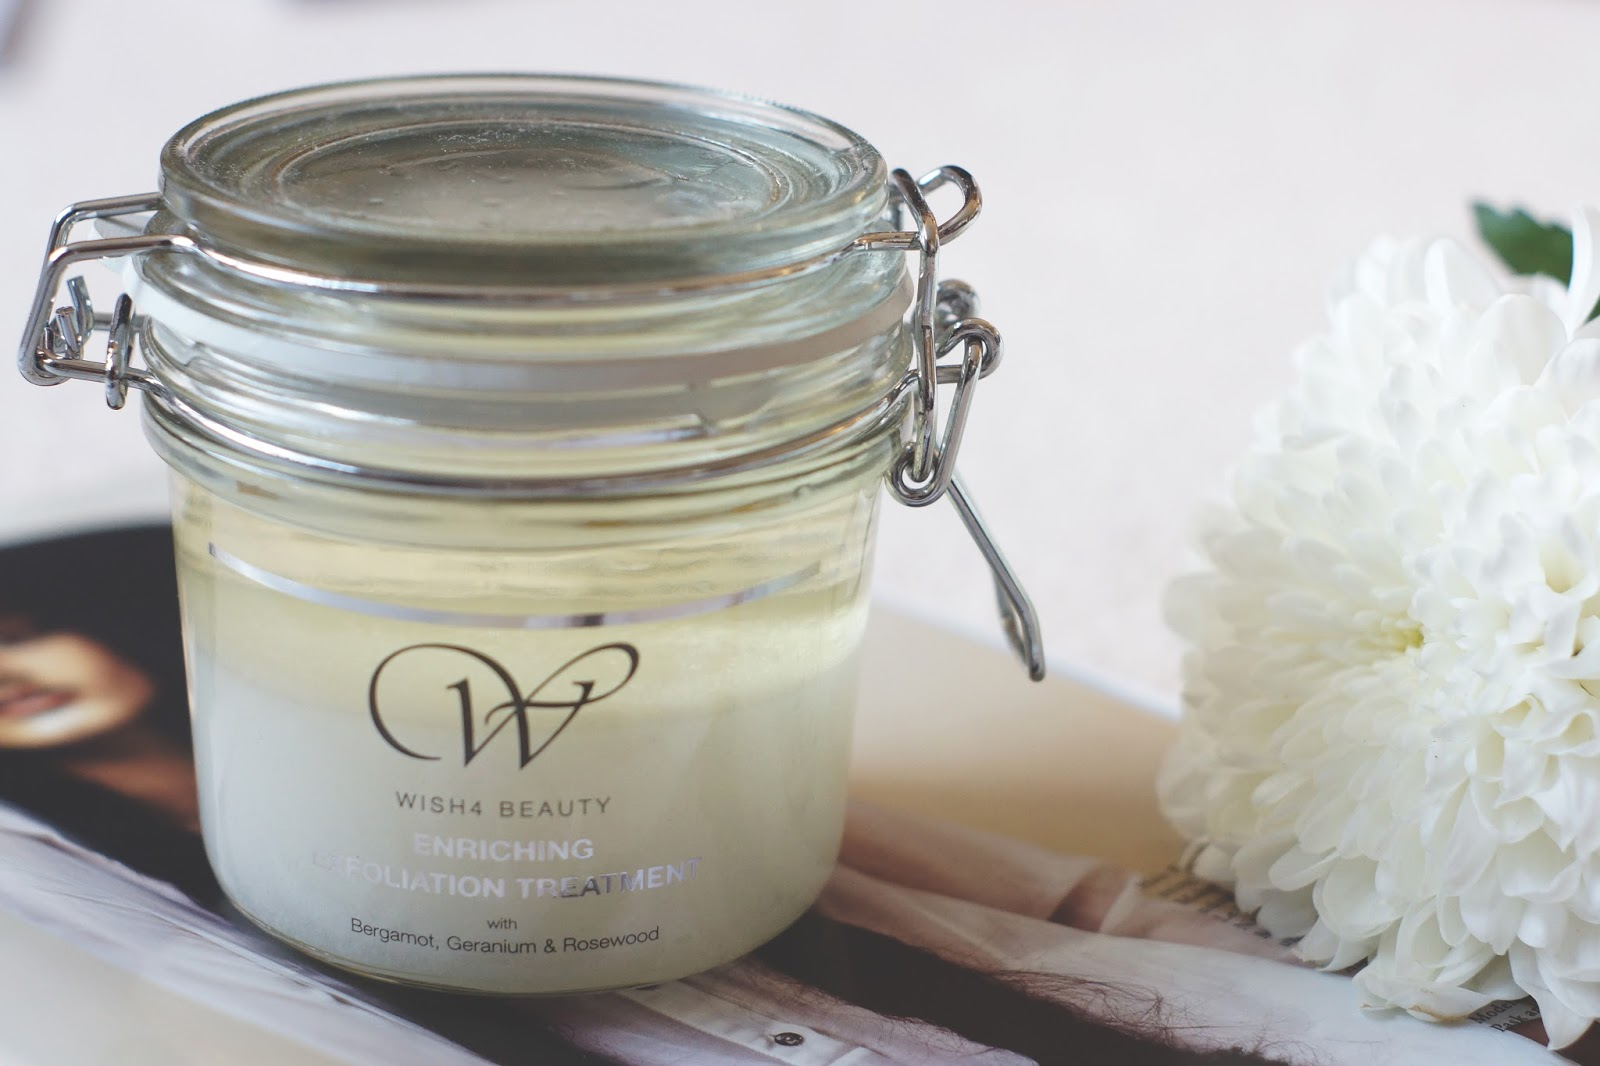 Wish 4 Beauty Enriching Exfoliation Treatment Hello Freckles